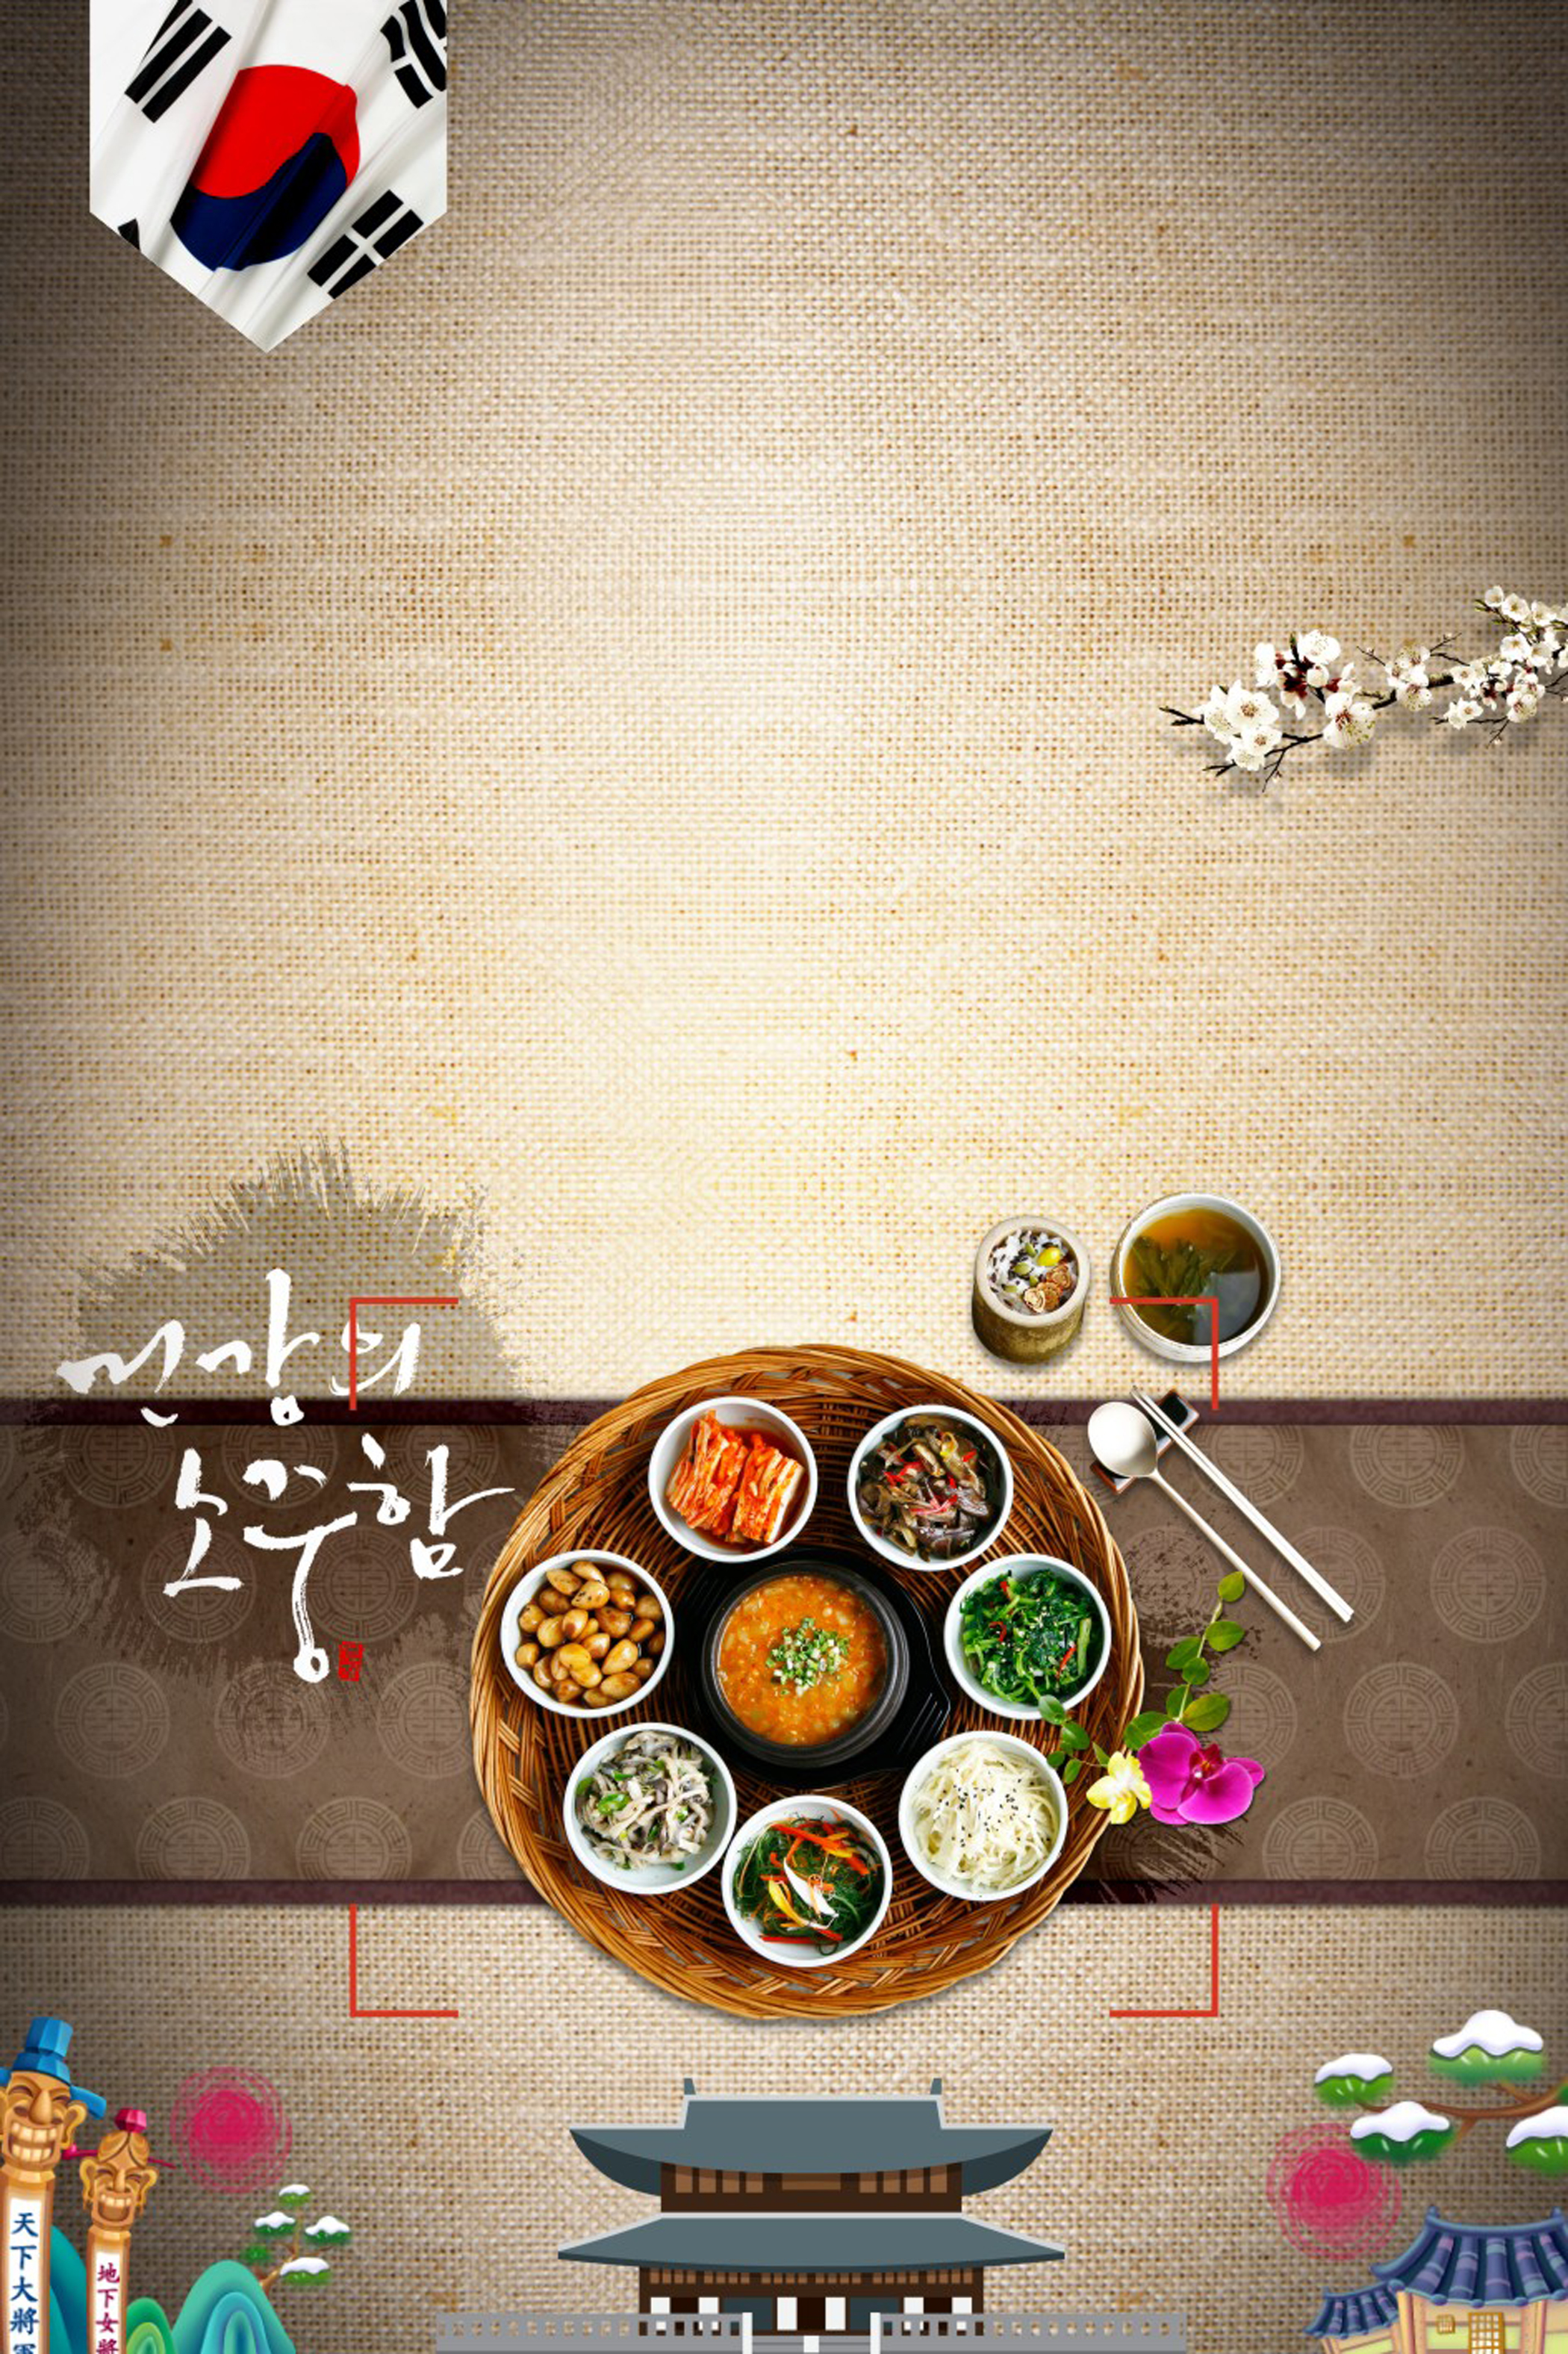 Fall Wedding Wallpaper Korean Cuisine Posters Korean Food Poster Background